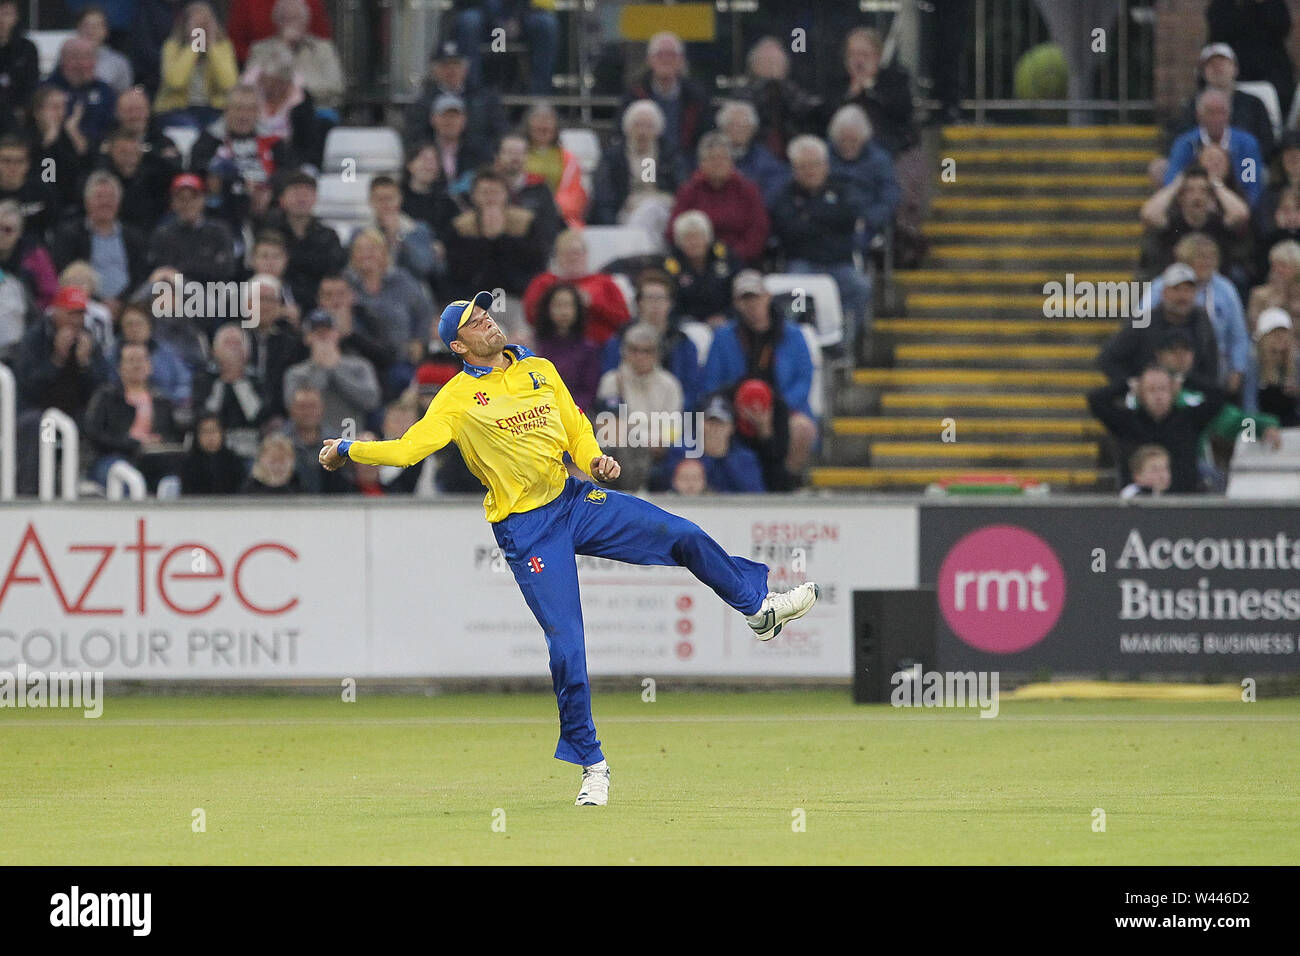 CHESTER LE STREET, ENGLAND 19th July 2019. Jack Burnham of Durham in the field during the Vitality T20 Blast match between Durham County Cricket Club and Northamptonshire County Cricket Club at Emirates Riverside, Chester le Street on Friday 19th July 2019. (Credit: Mark Fletcher   MI News ) Credit: MI News & Sport /Alamy Live News - Stock Image